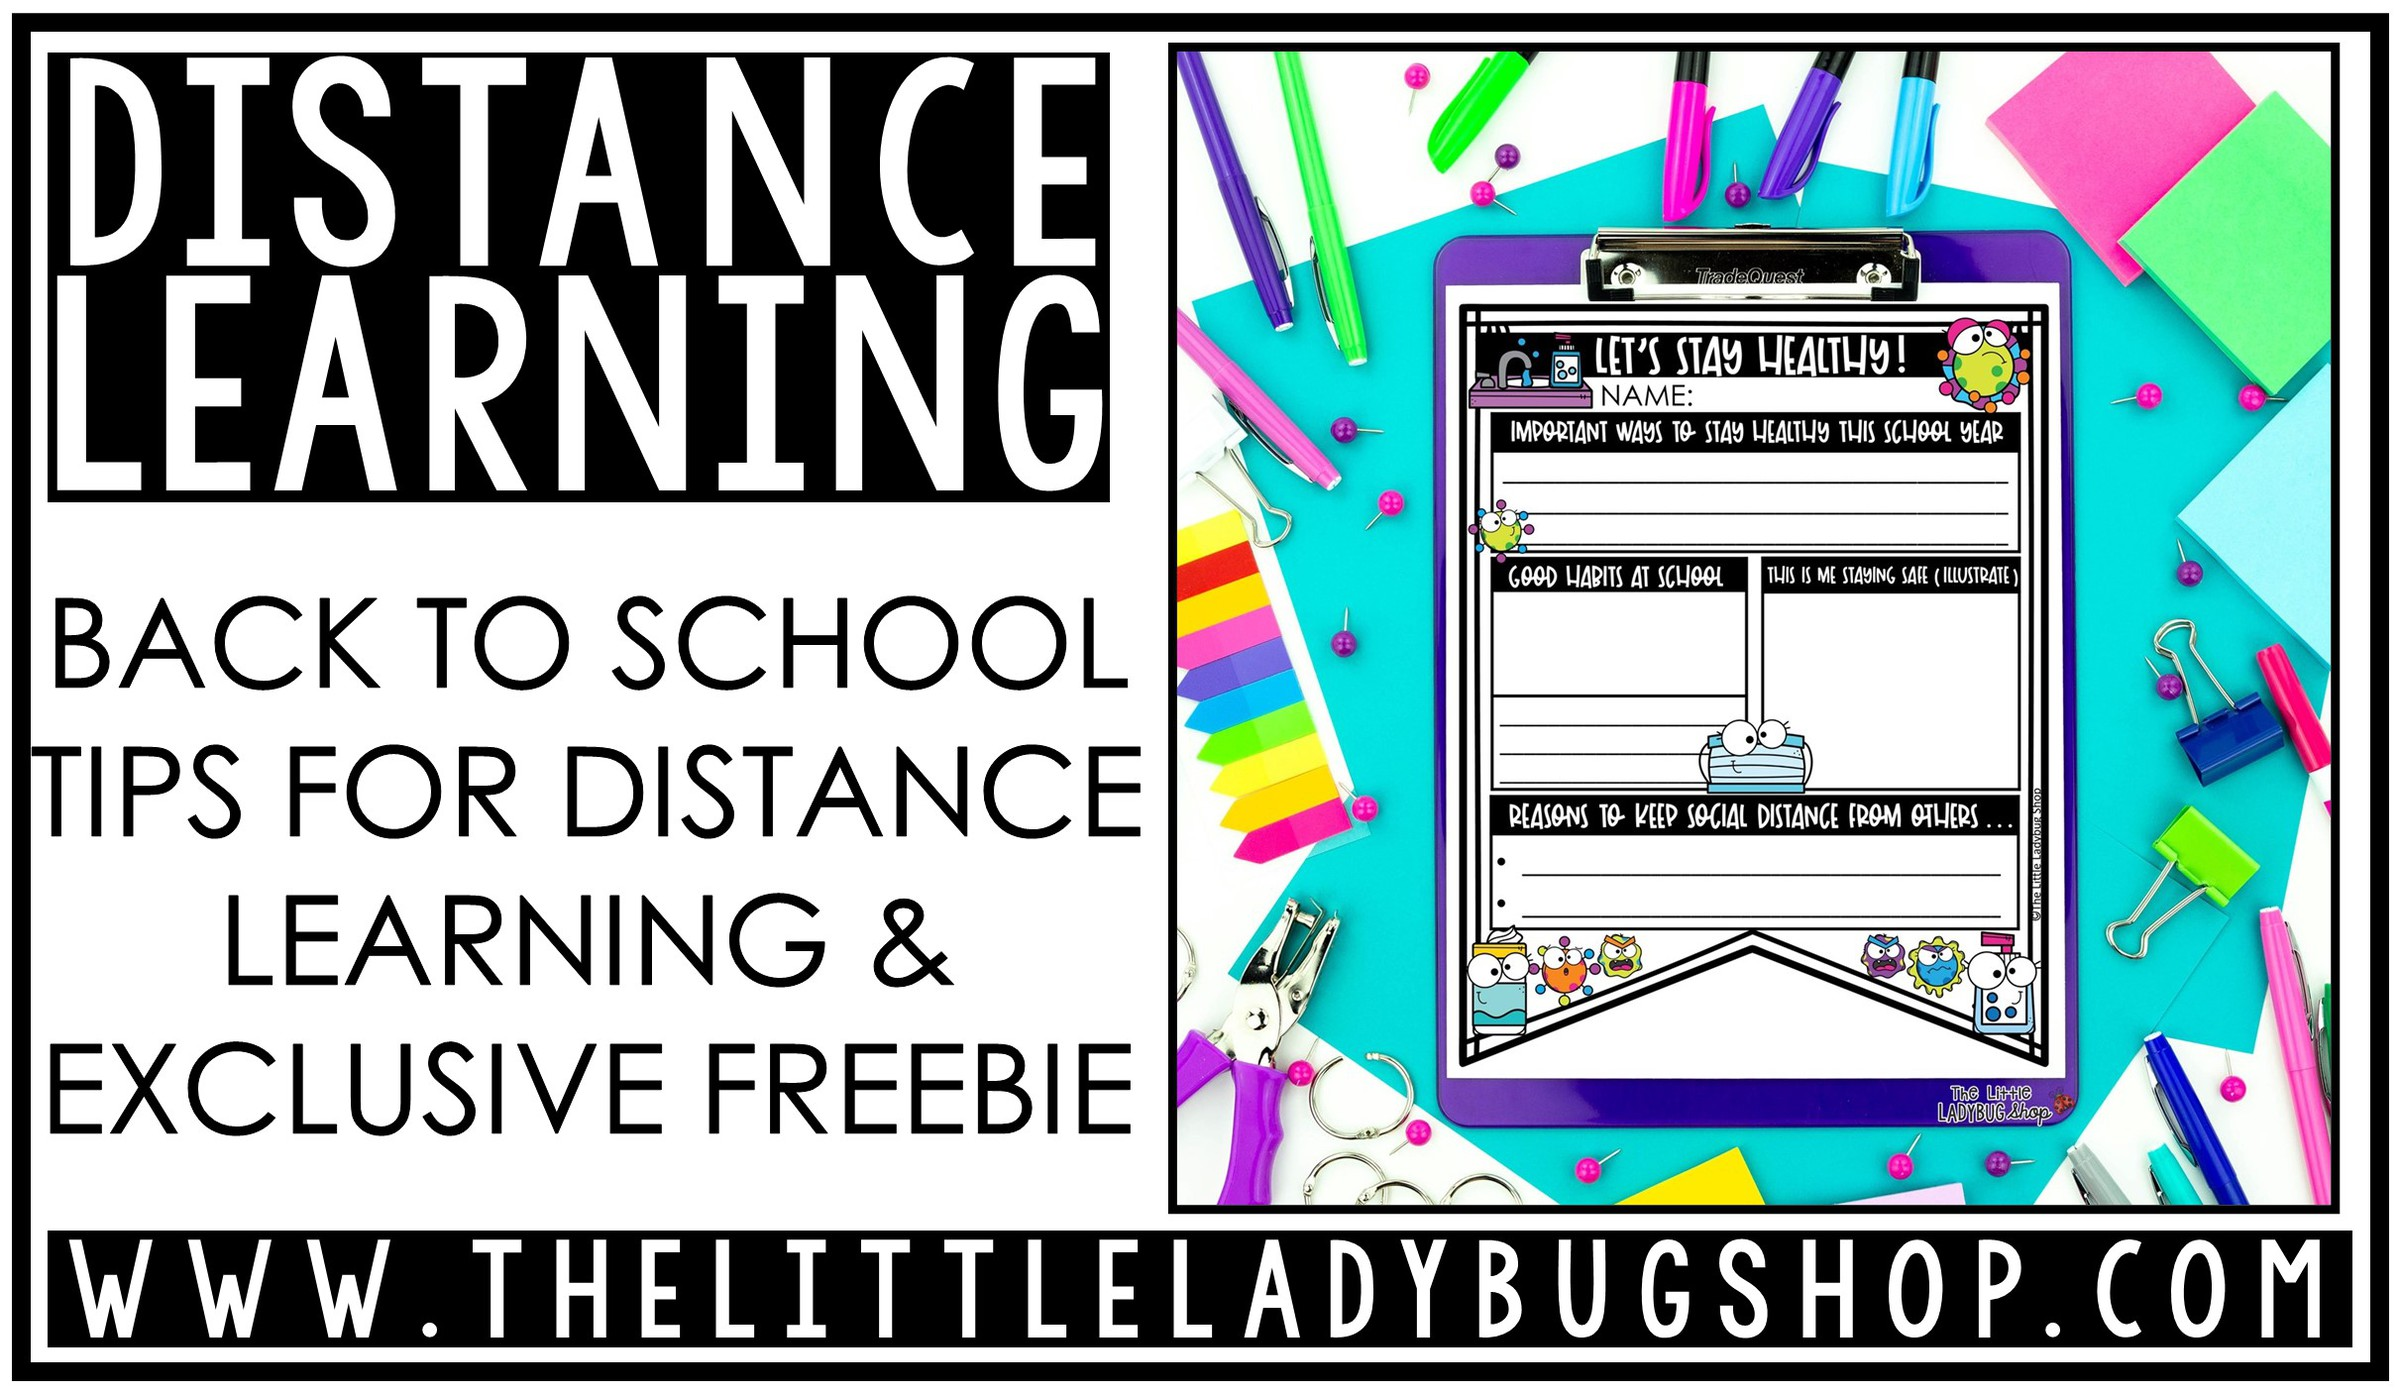 Ideas for Back to School Distance Learning freebie